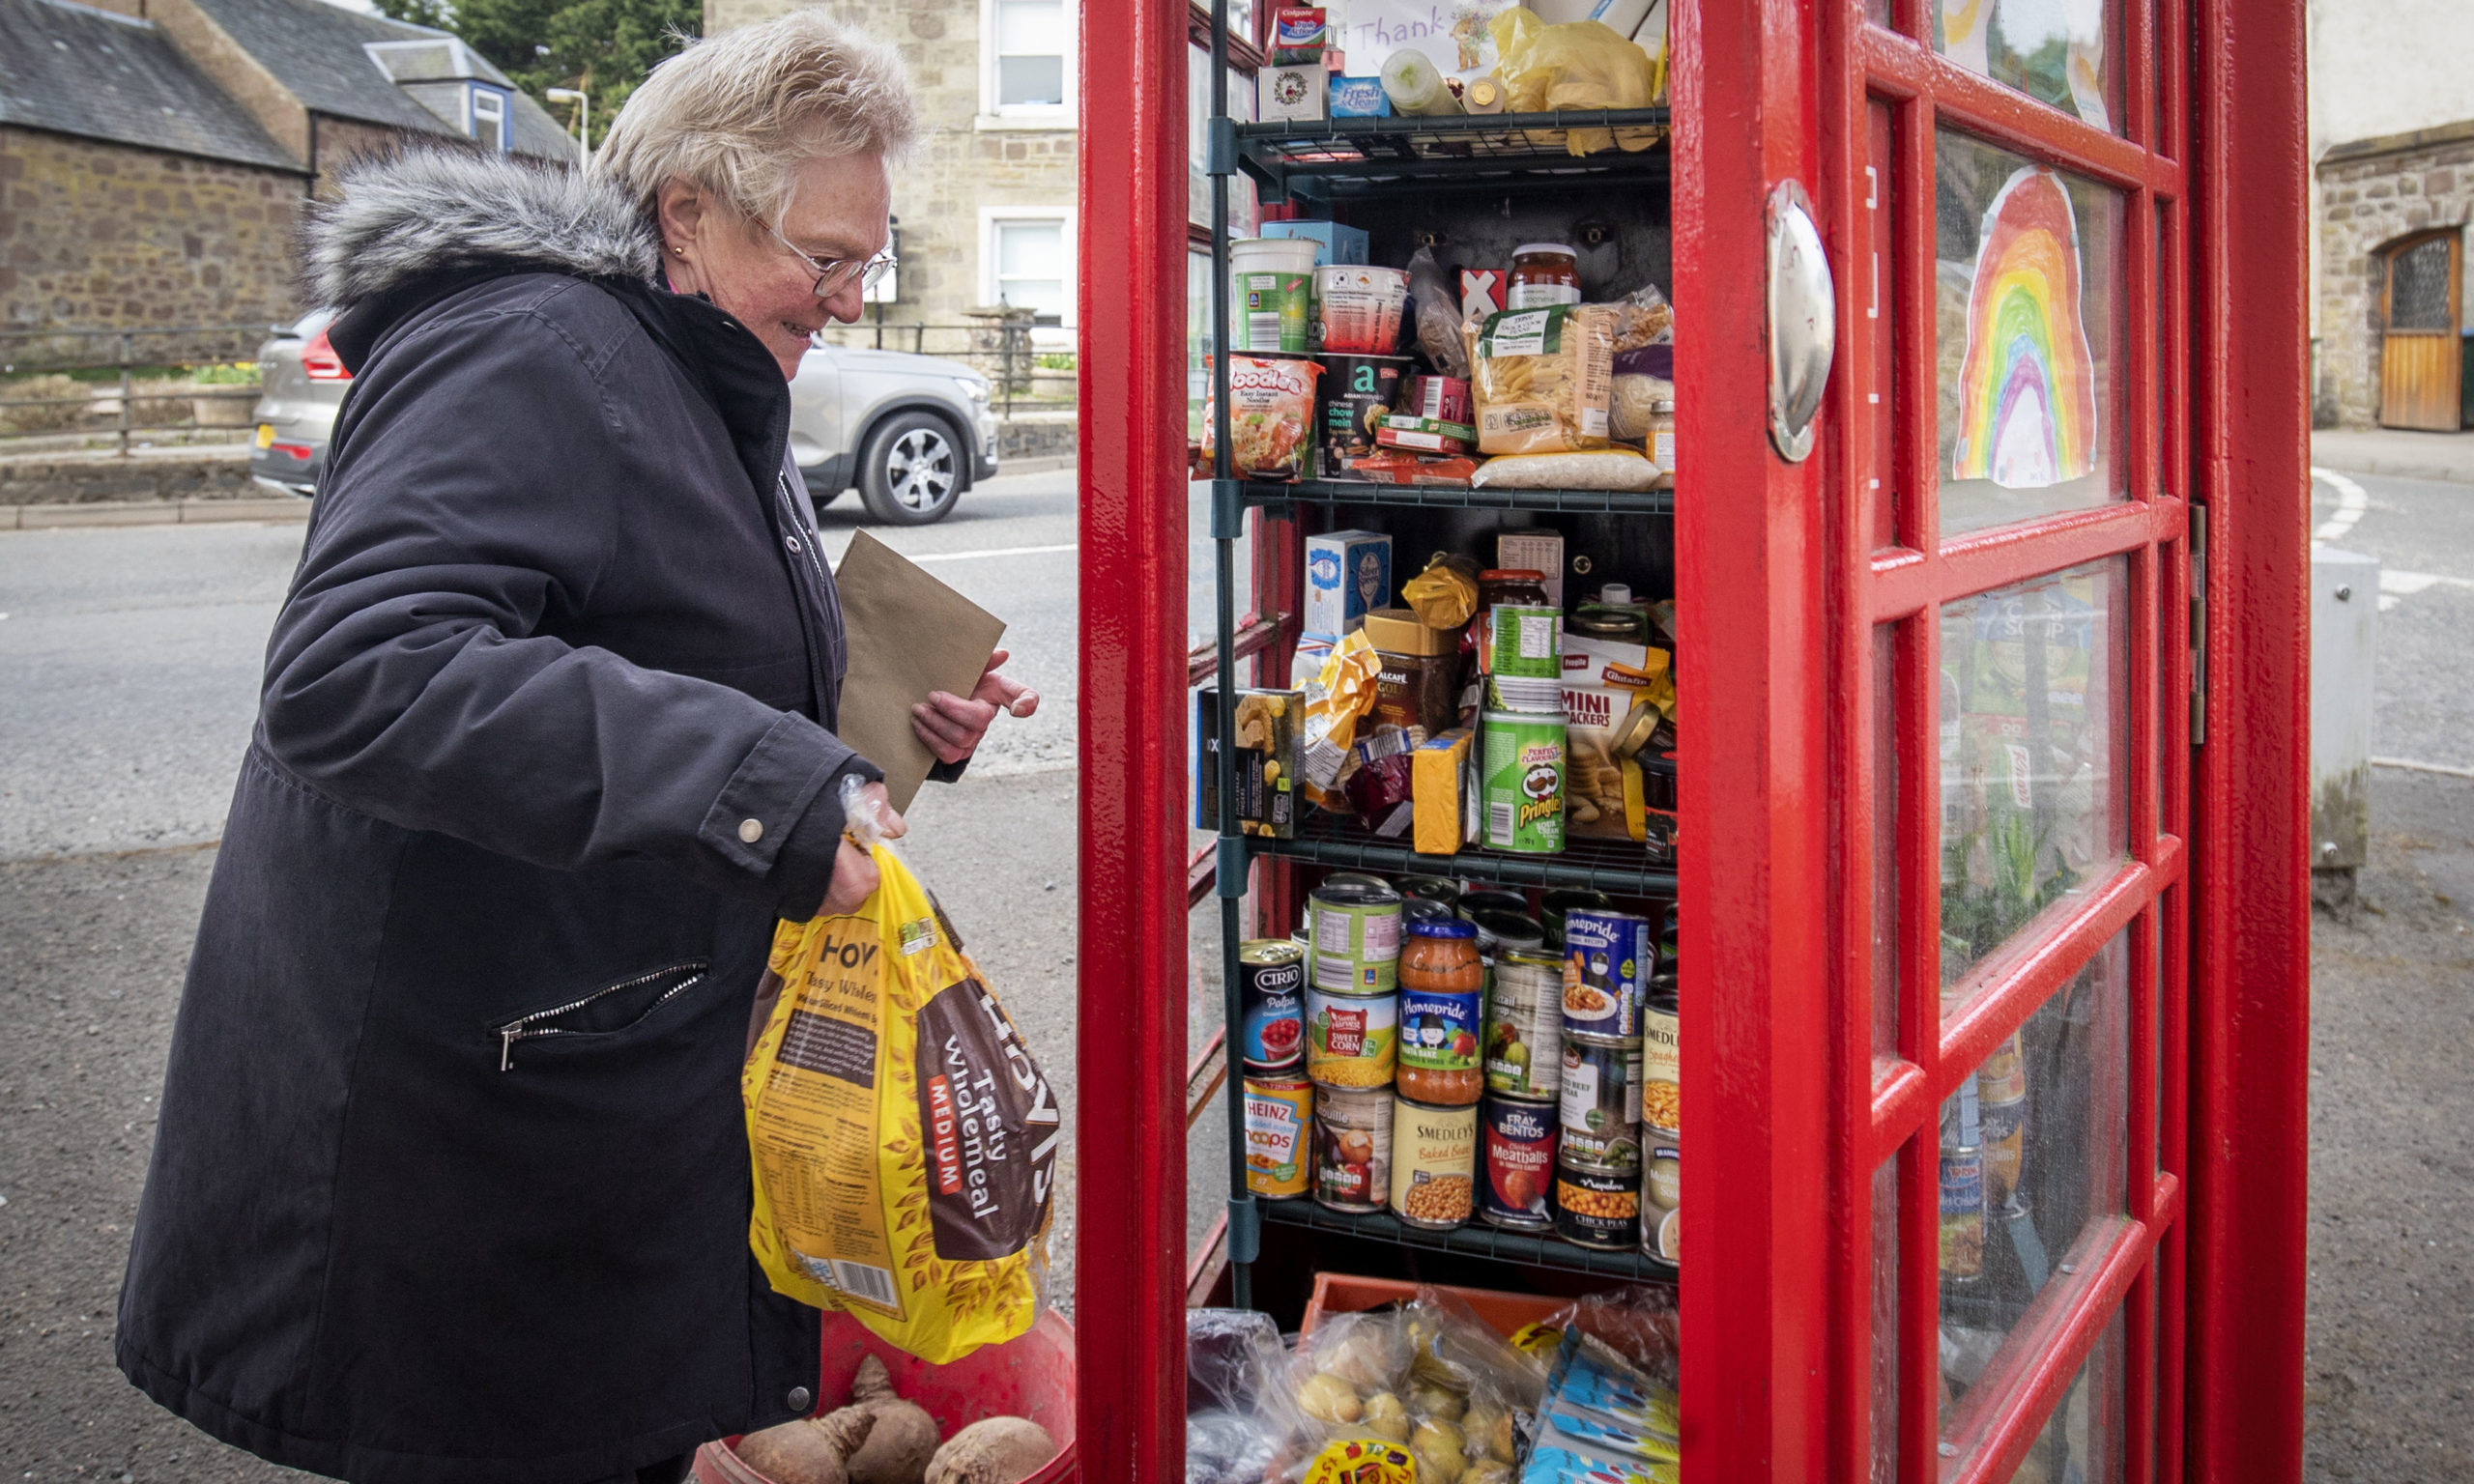 Local residents use the community food larder in Muthill, near Crieff in Perthshire, which was set up using the old village phone box as a food collection and donation point as the UK continues in lockdown to help curb the spread of the coronavirus. PA Photo. Picture date: Tuesday April 14, 2020. See PA story HEALTH Coronavirus. Photo credit should read: Jane Barlow/PA Wire